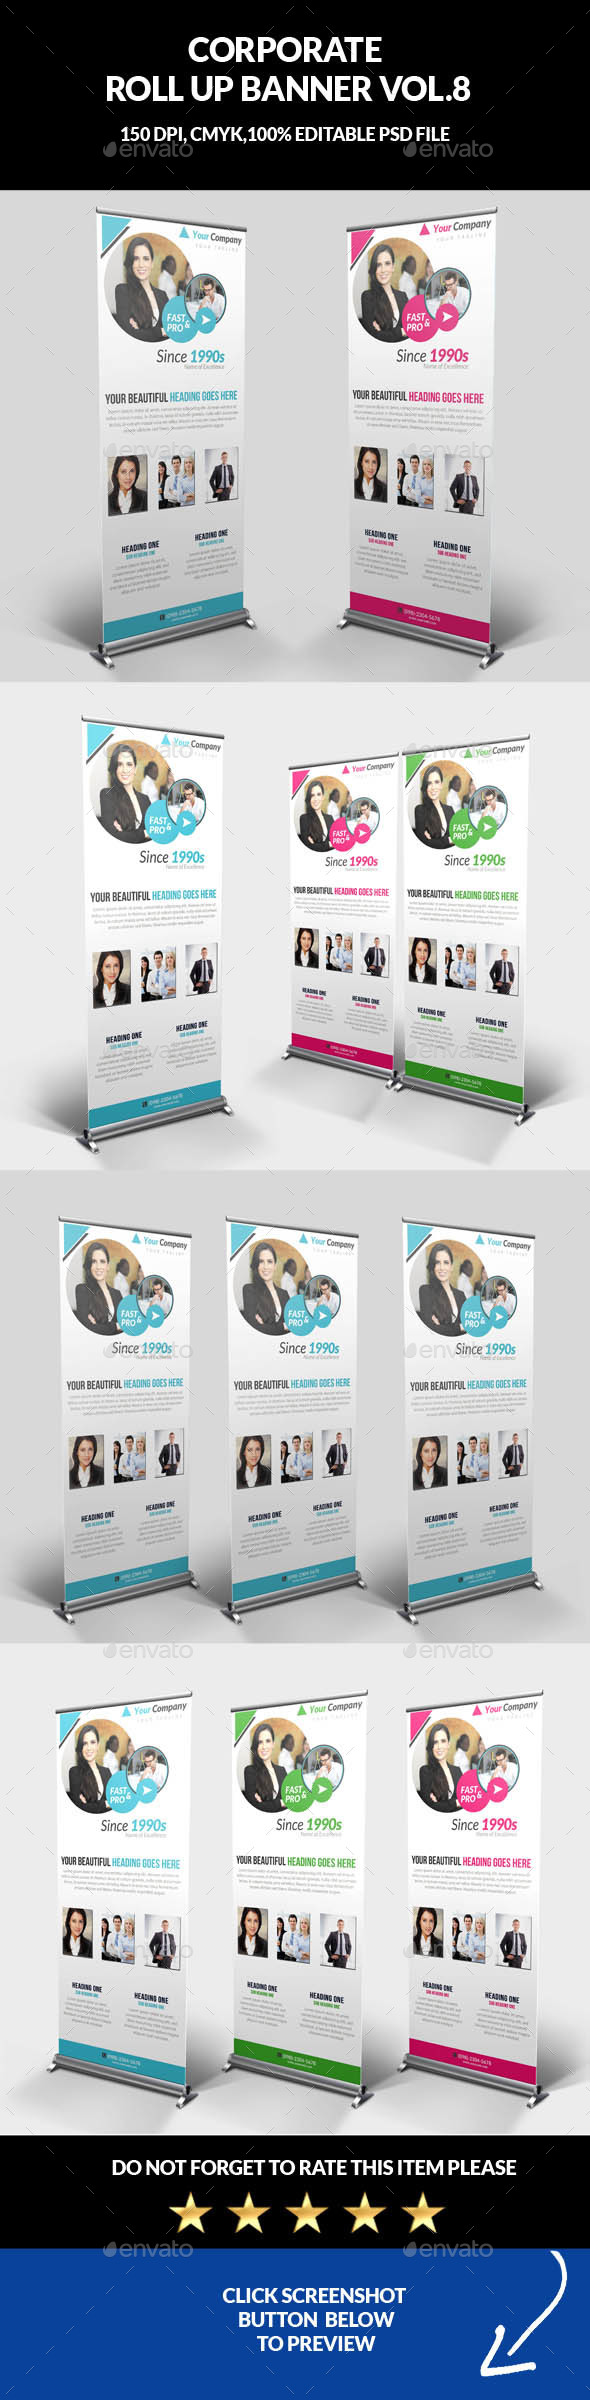 InDesign Banner Graphics, Designs & Templates from GraphicRiver